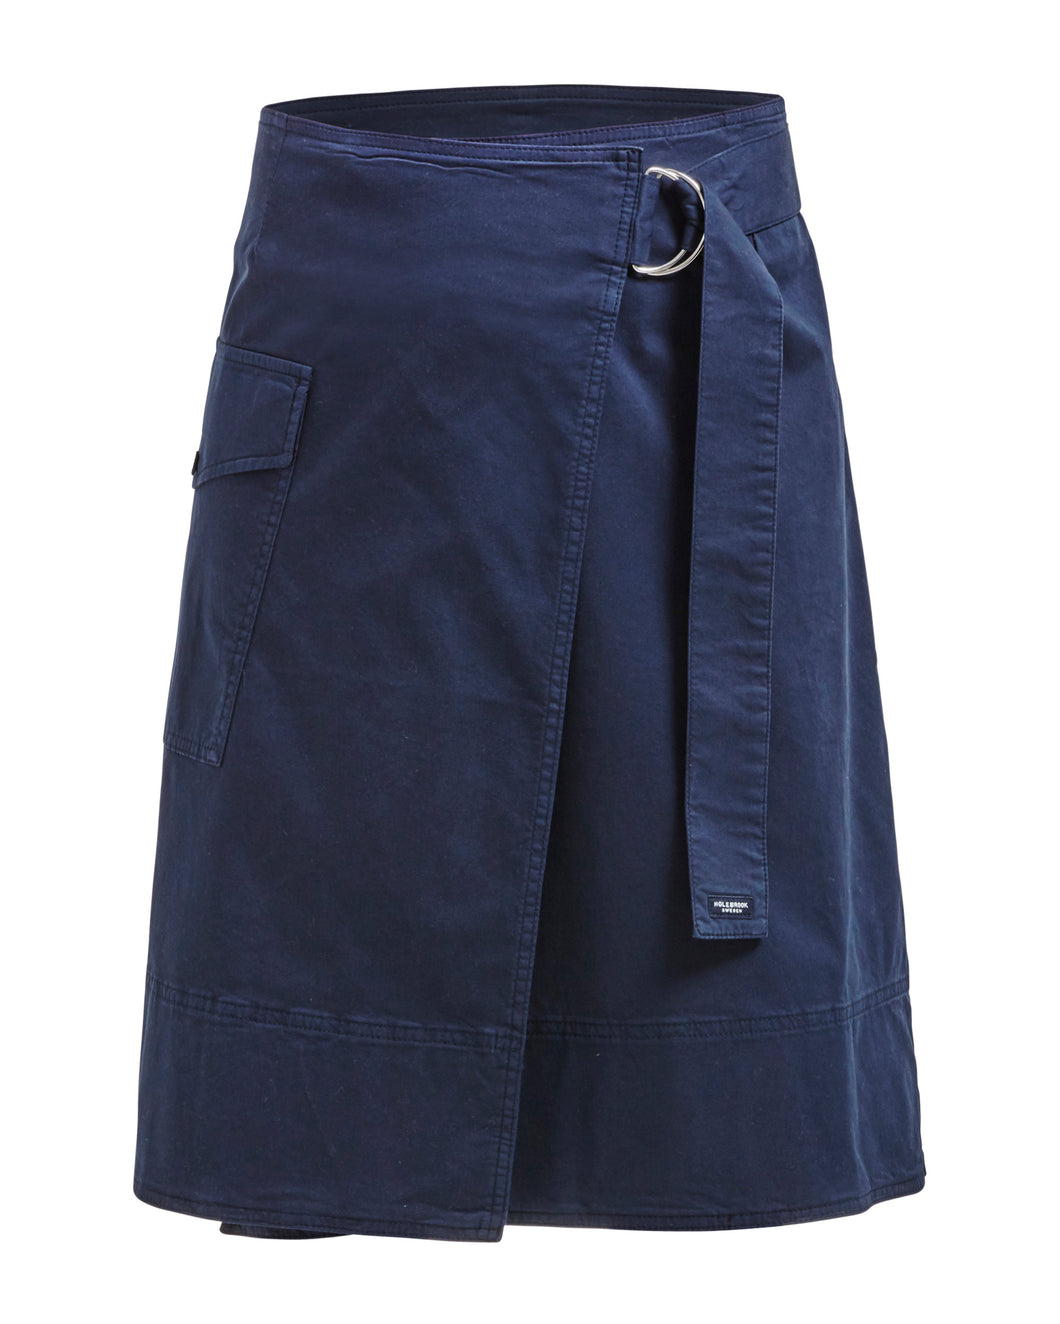 Holebrook Sweden Cina Worker Skirt (NEW)